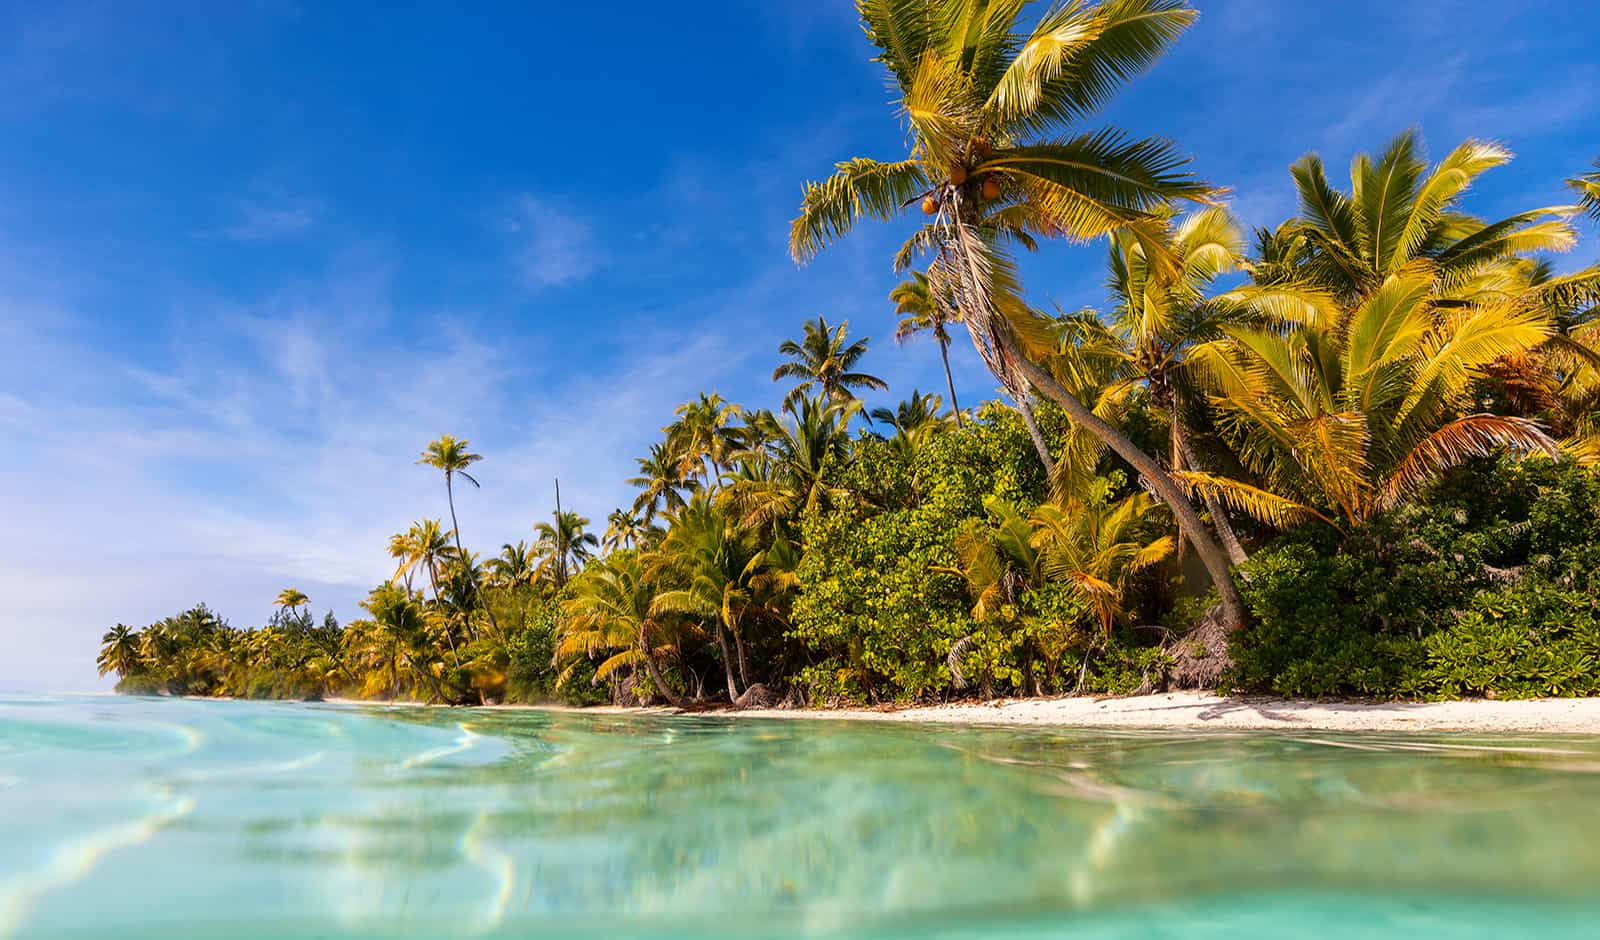 The Cook Islands: A Tropical Getaway Without the Crowds